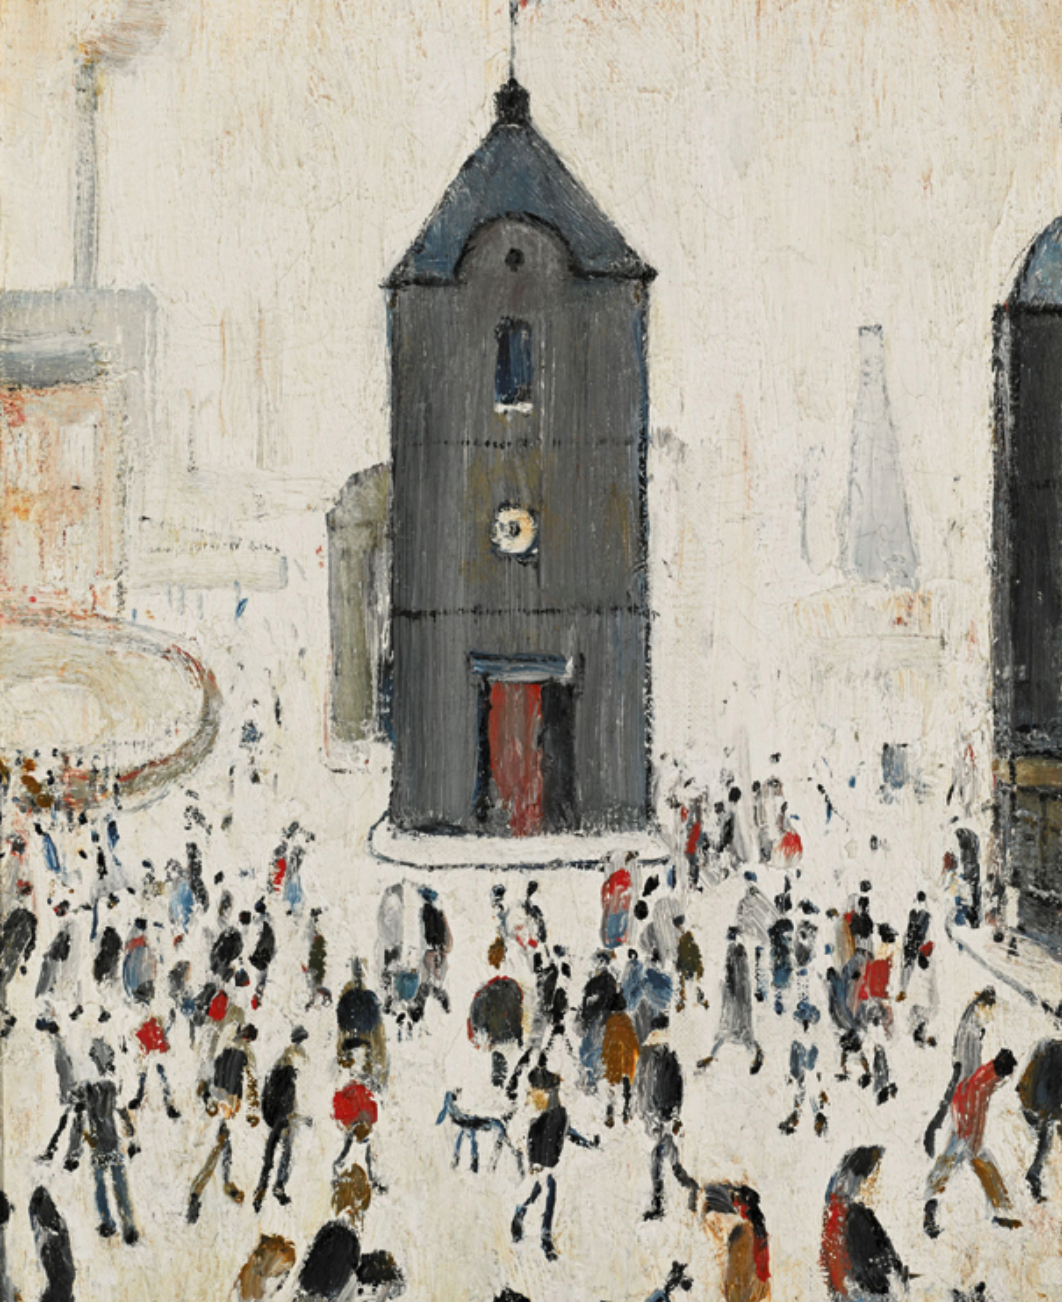 The Black Church (1964) by Laurence Stephen Lowry (1887 - 1976), English artist.